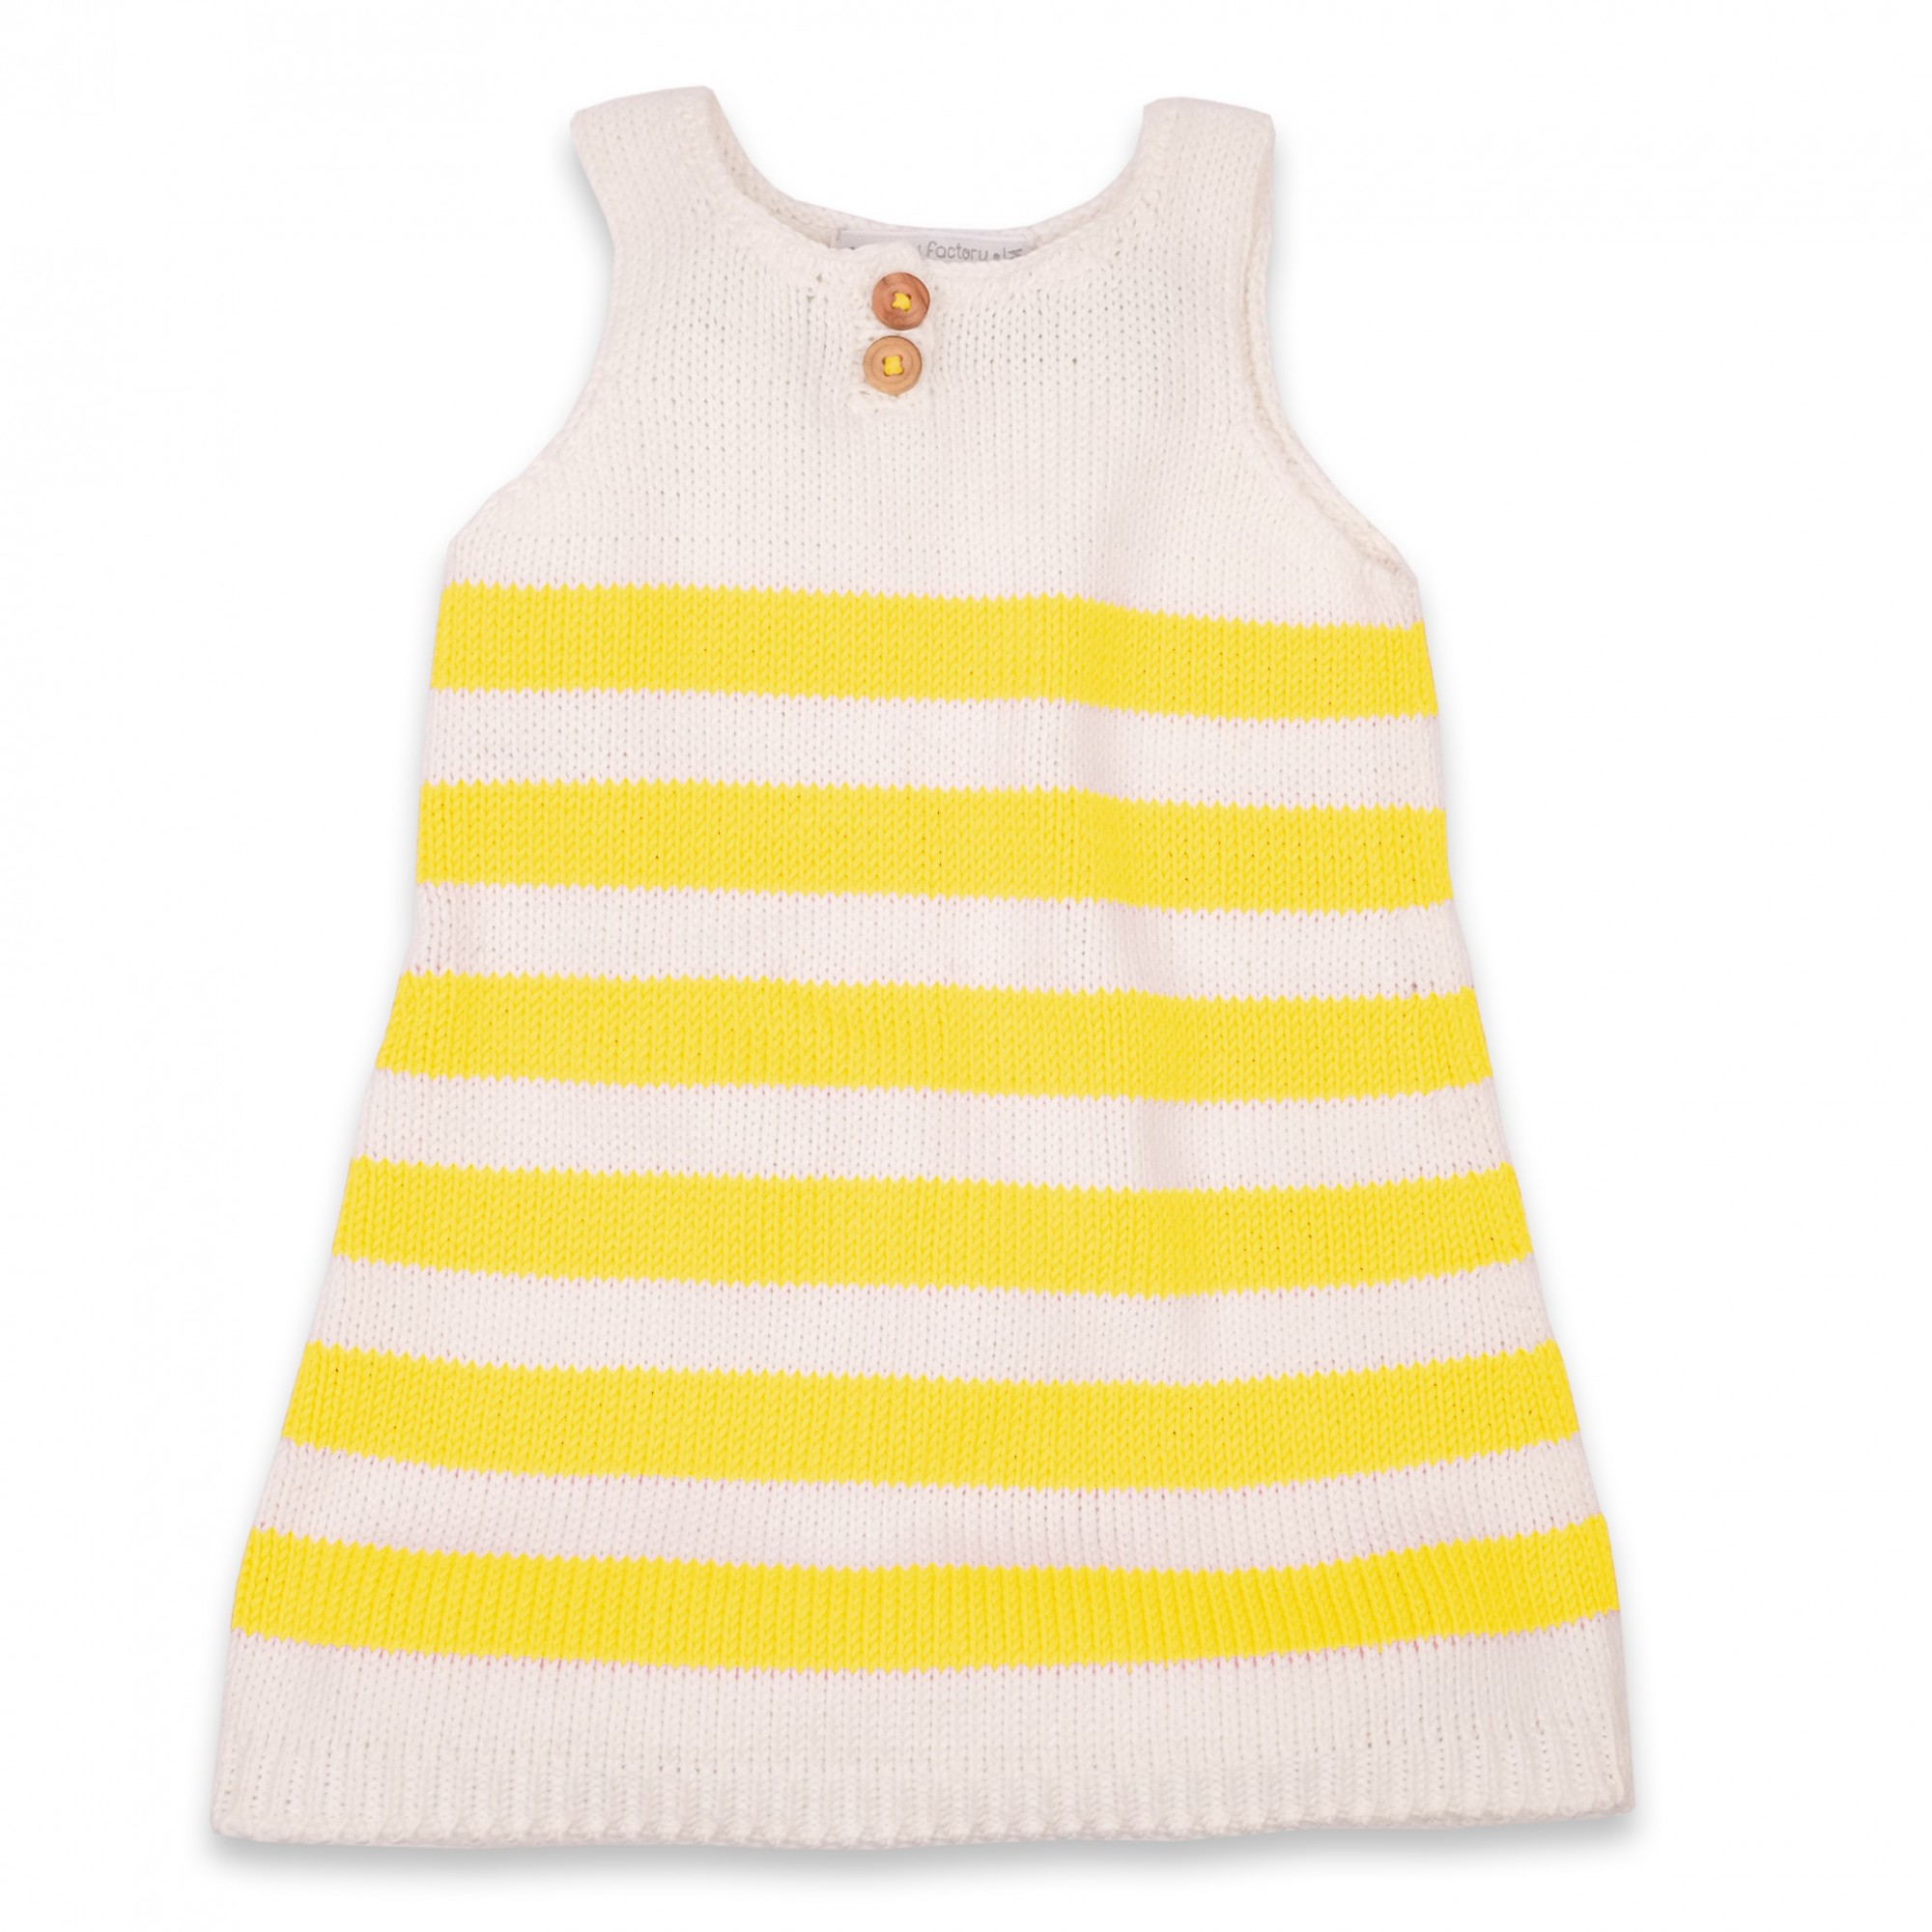 Granny s knitwear – Natural white and lemon yellow striped dress for